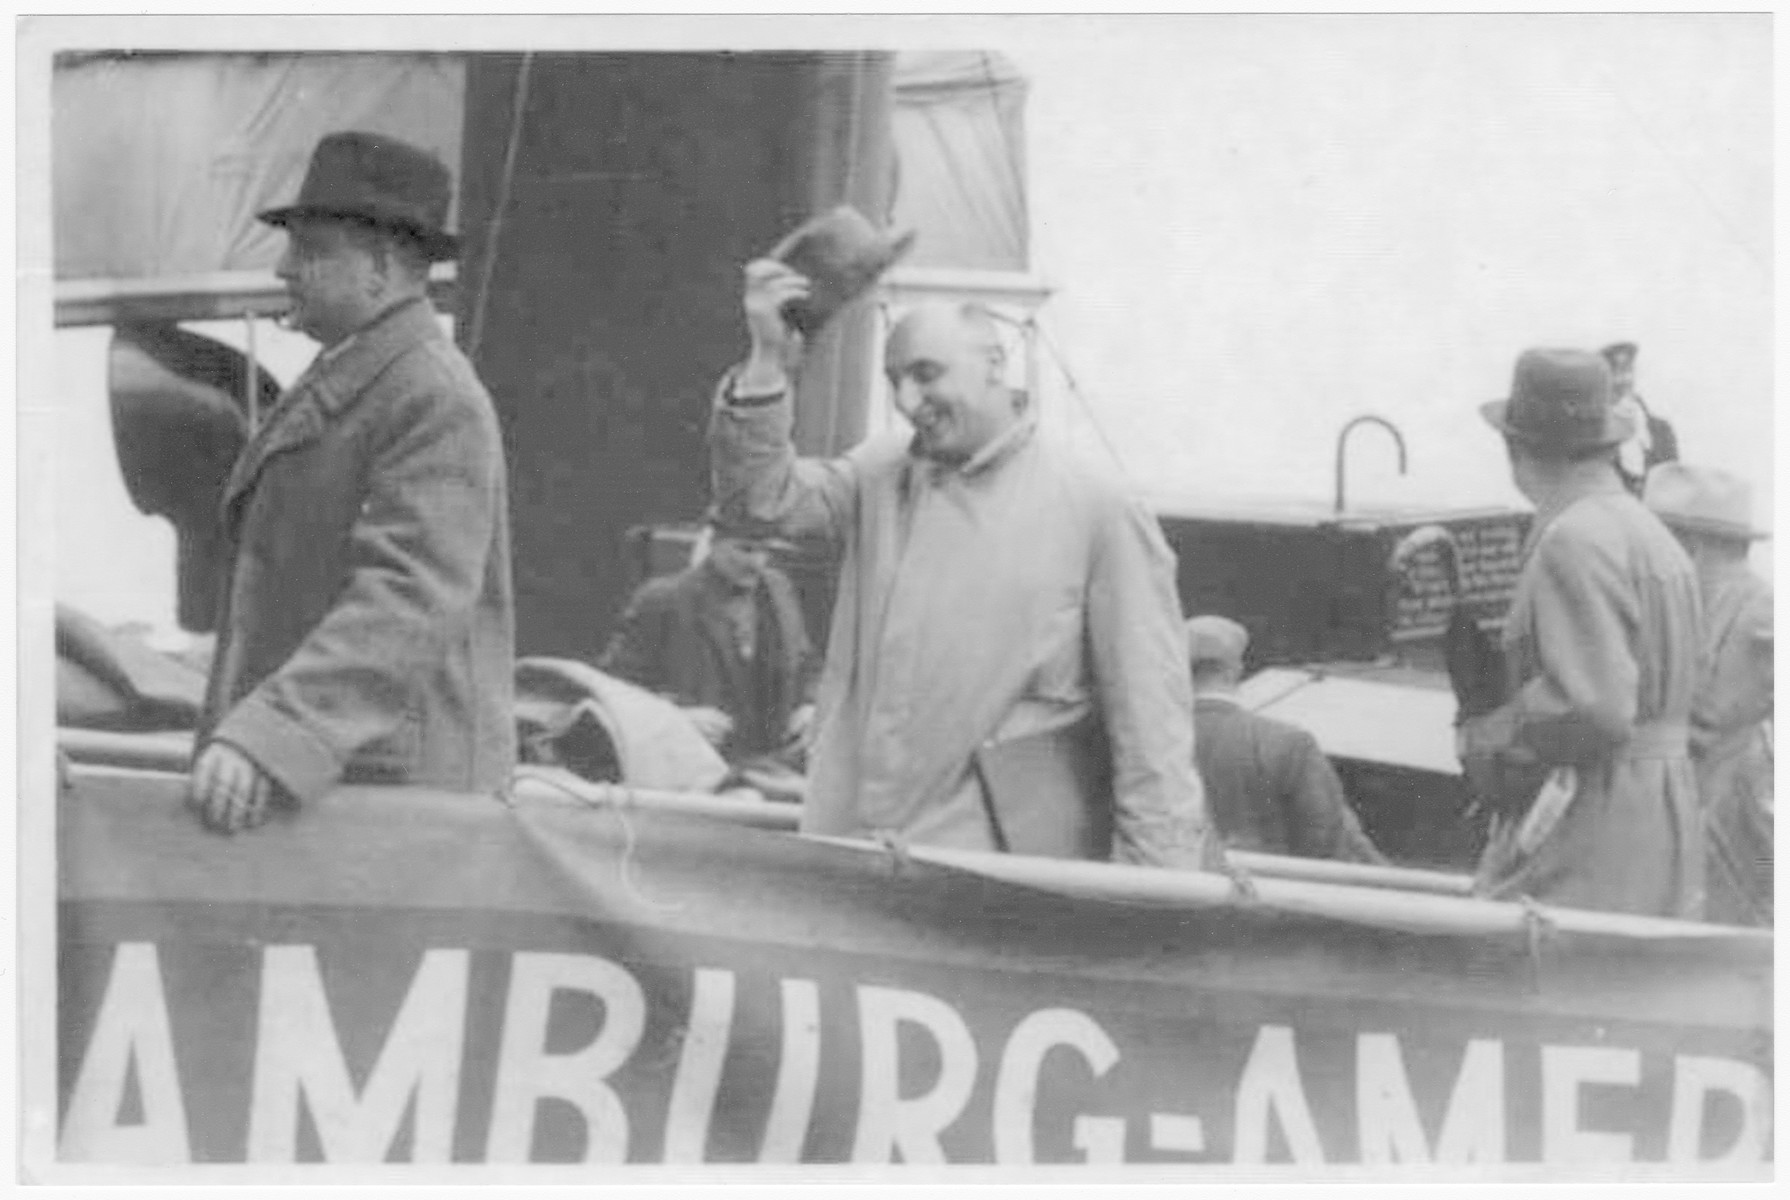 George Spitz (center) boards a ship for Cuba to set up a home for his family, two weeks prior to the departure of the St. Louis.